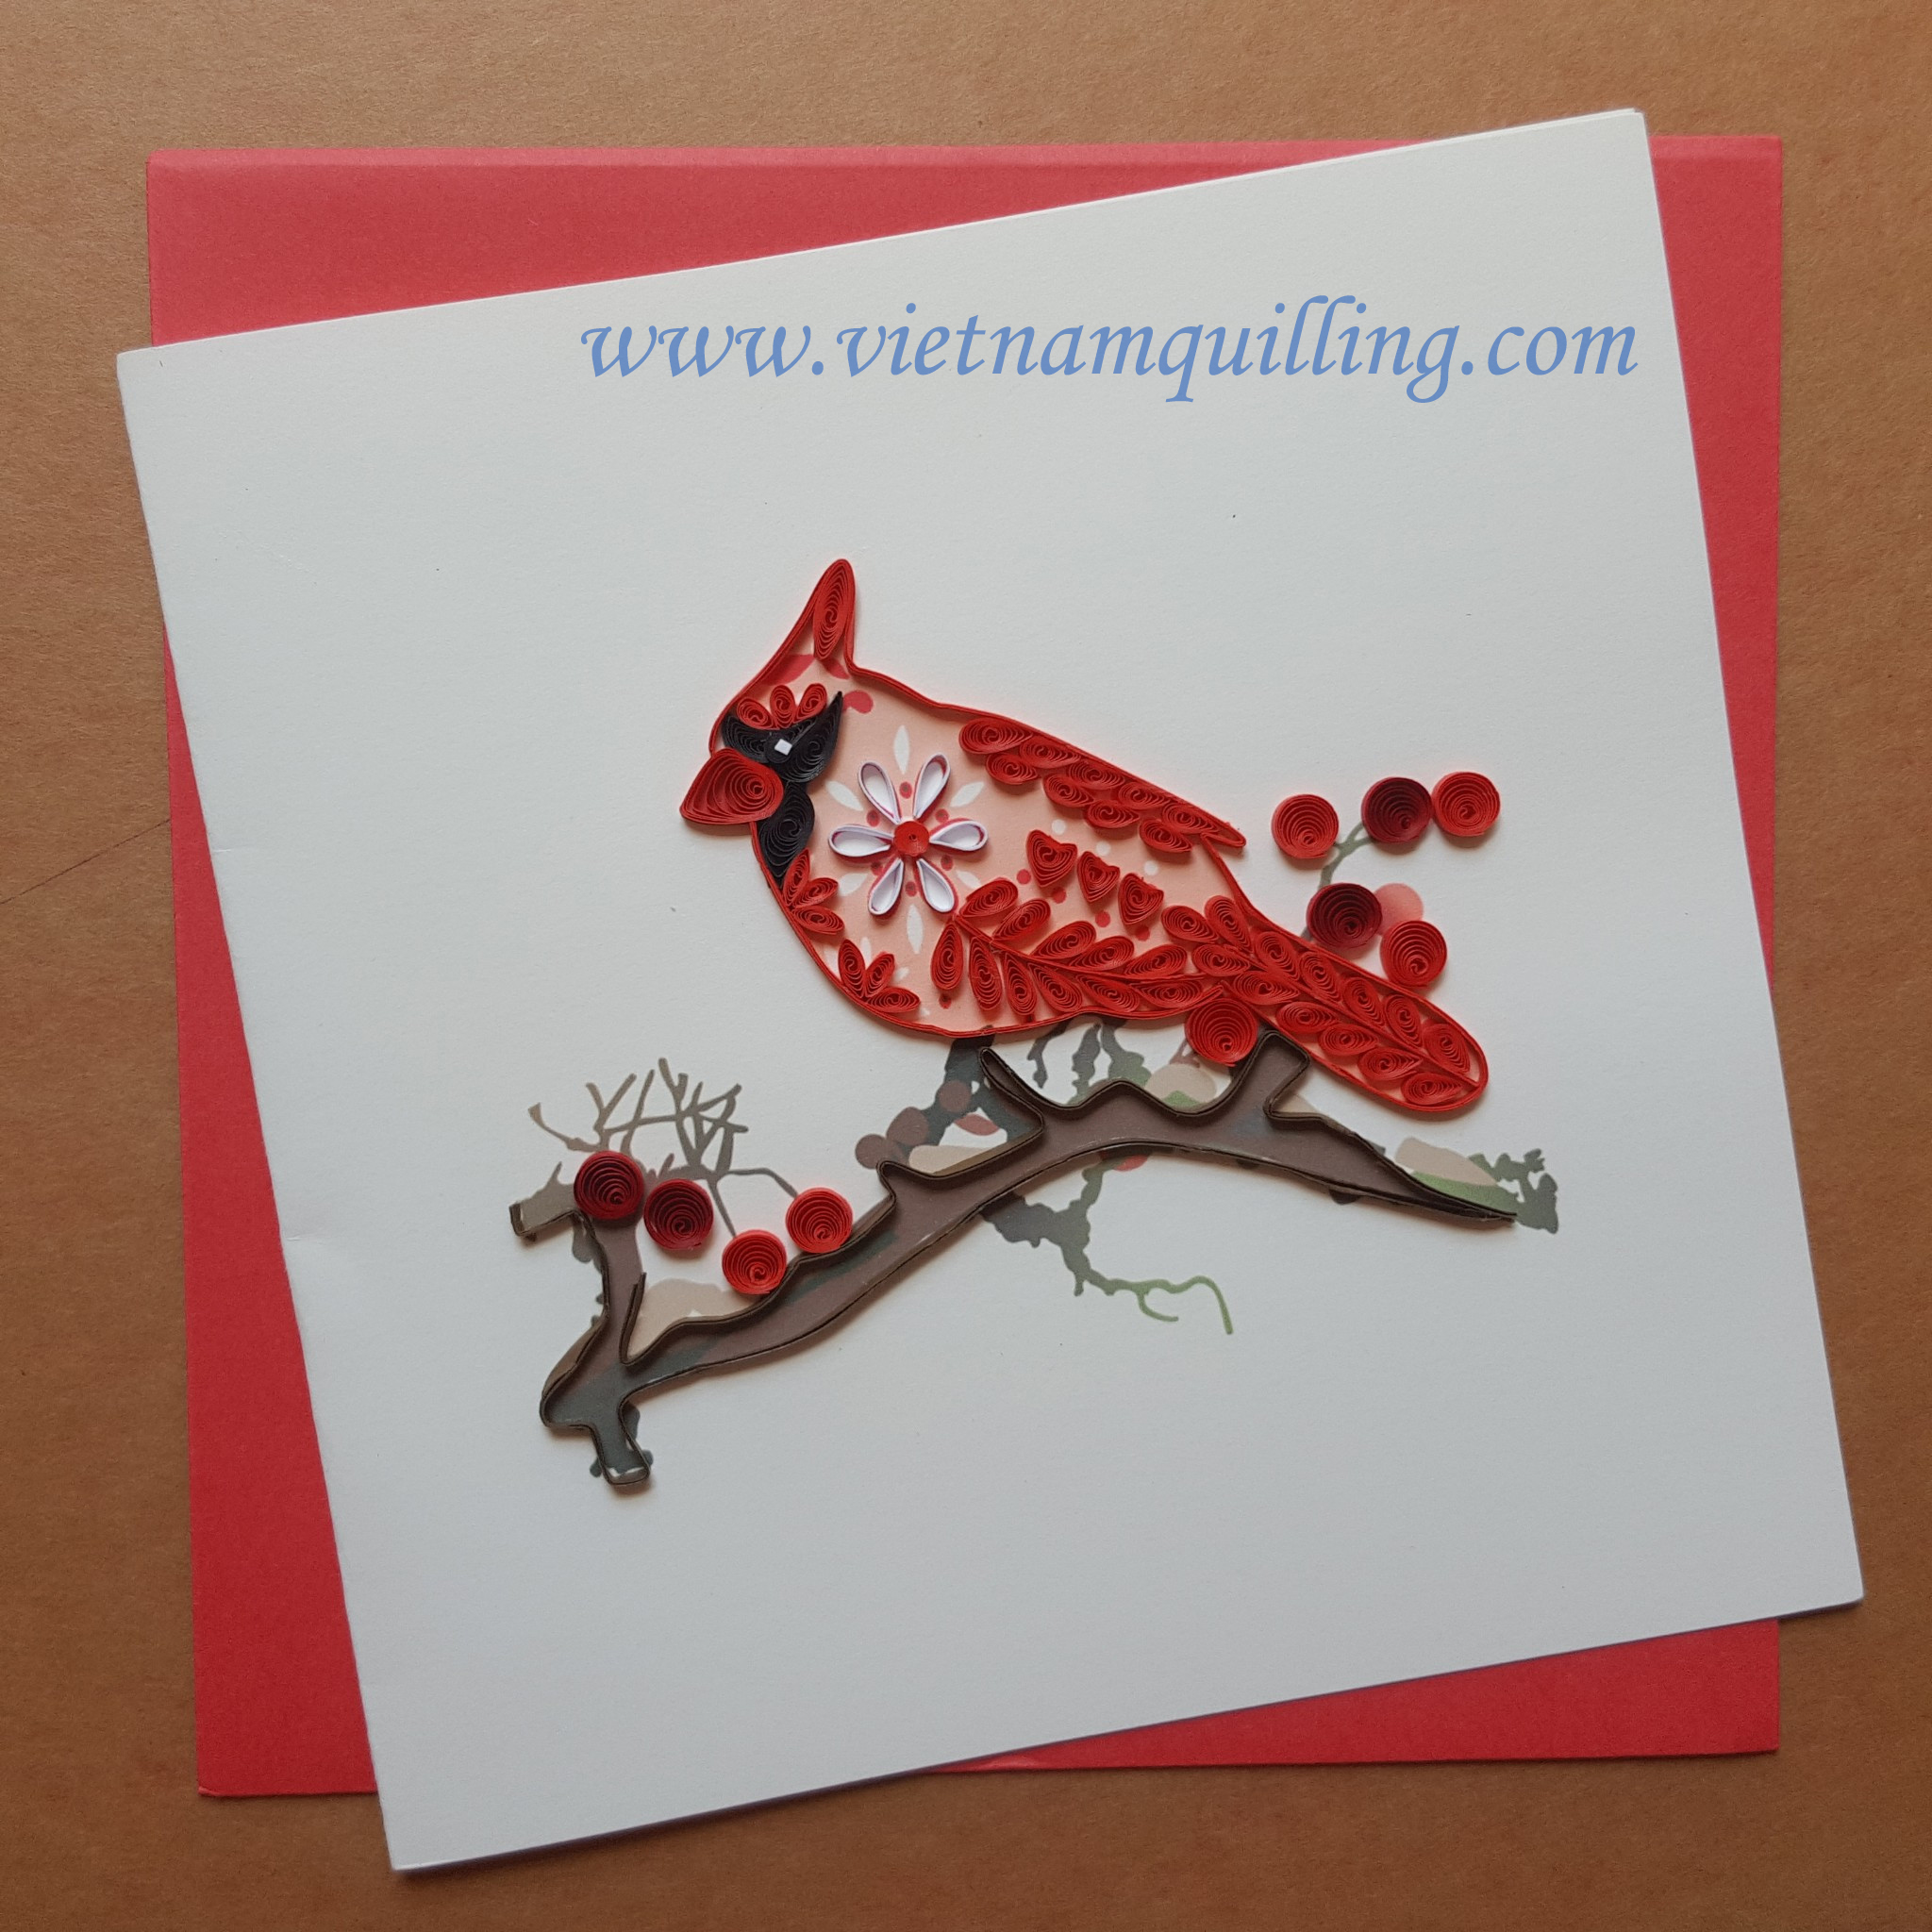 Quilling animal card | Vietnam quilling greeting cards manufacturer